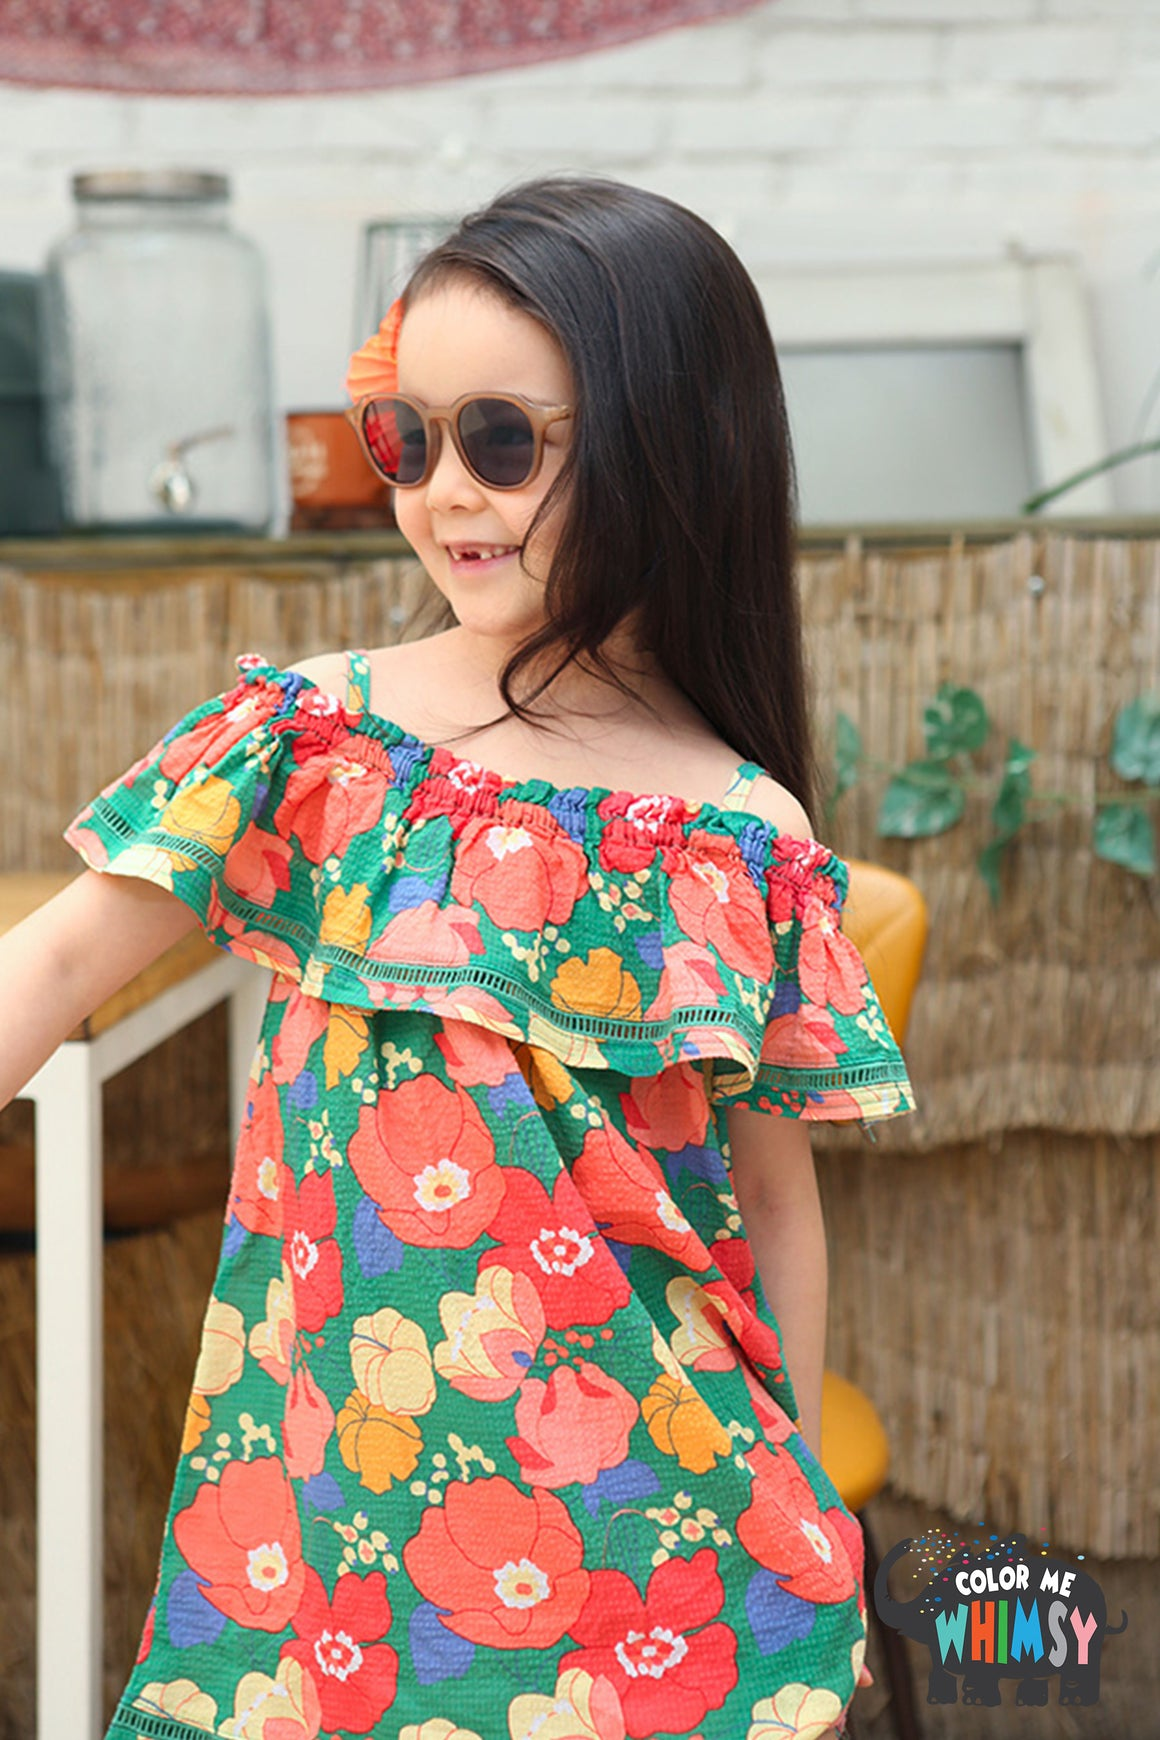 Peach and Cream Aloha Off-shoulder Dress at Color Me WHIMSY Hip Kid's Fashion Ethically Made in South Korea